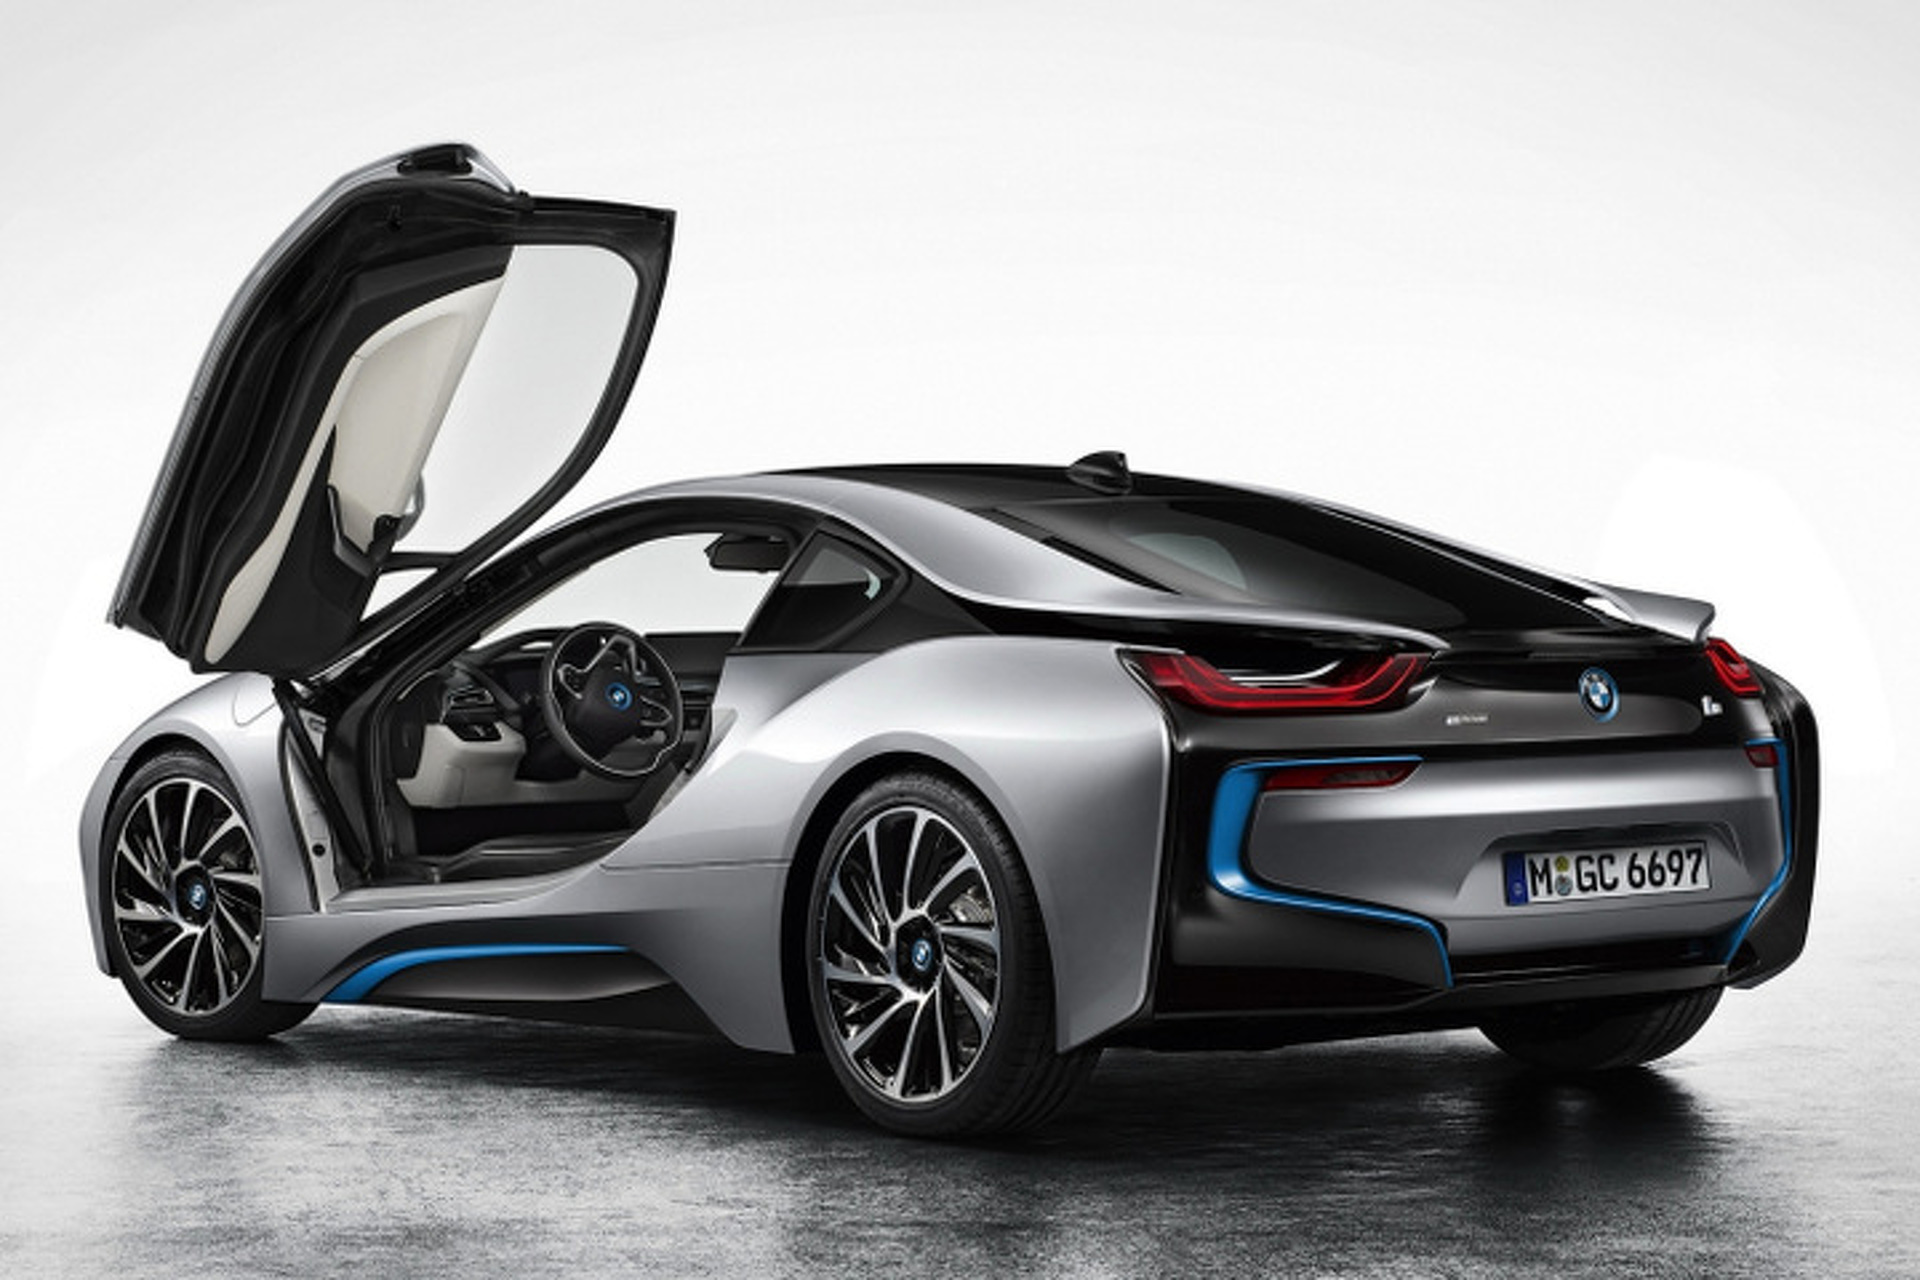 8 High-Powered Hybrids That Will Make You Take Another Look at Green Cars